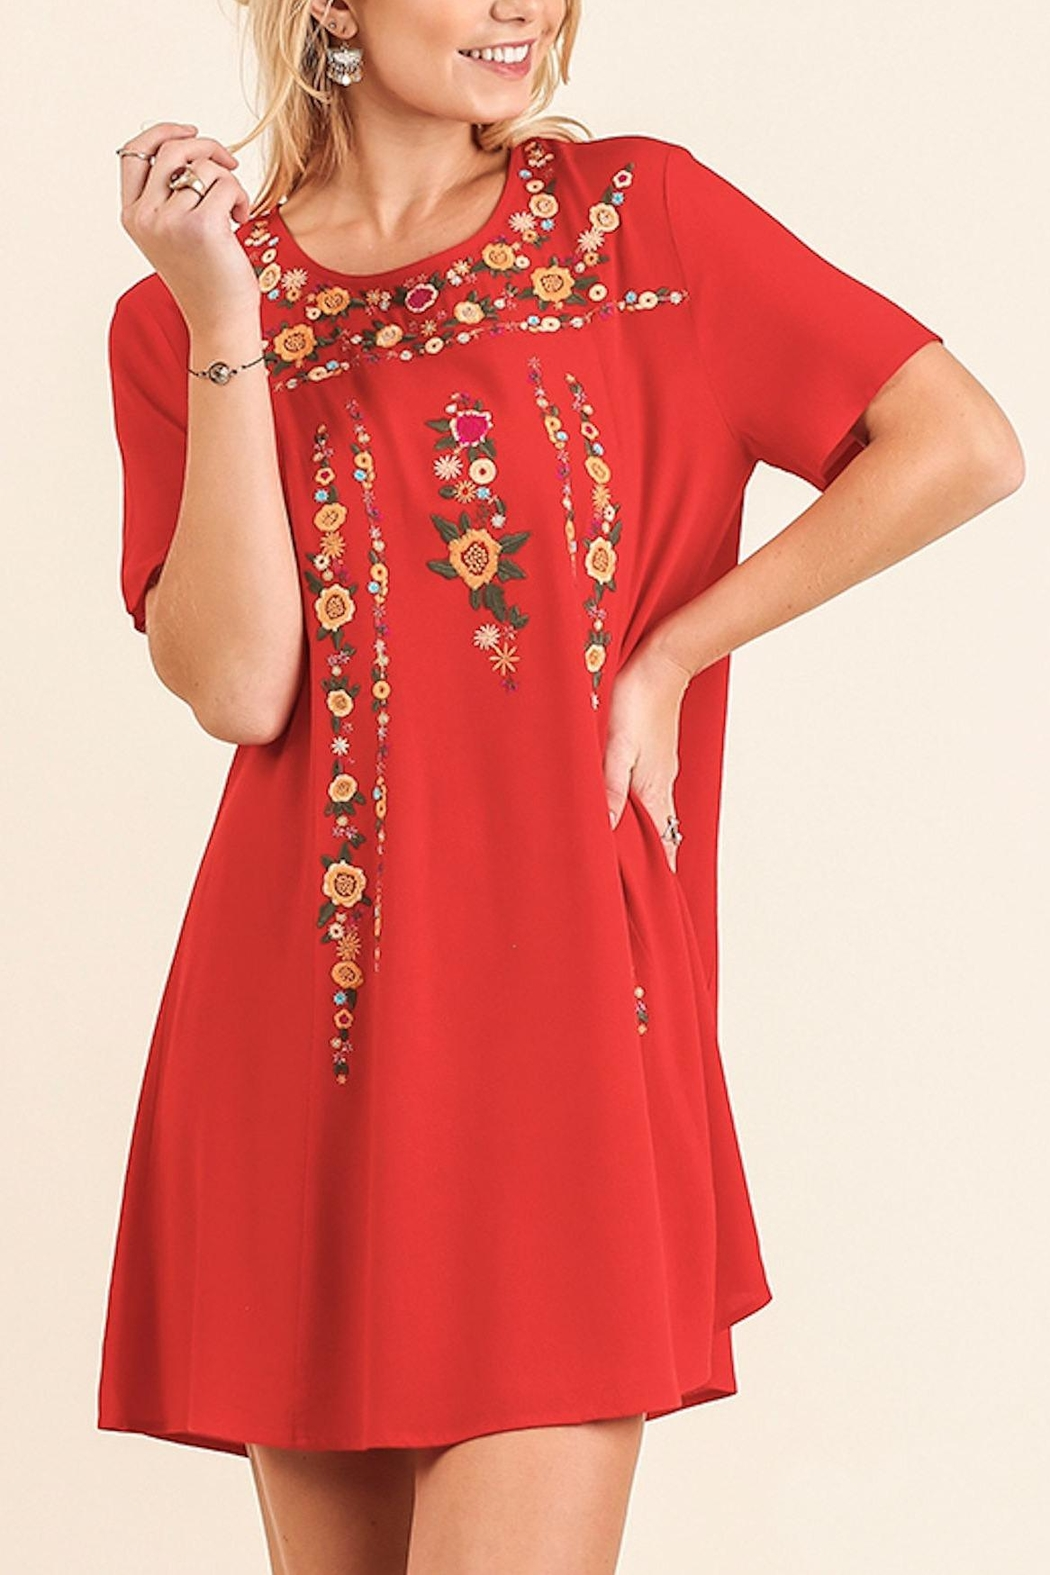 Umgee USA Floral Embroidered Dress - Main Image